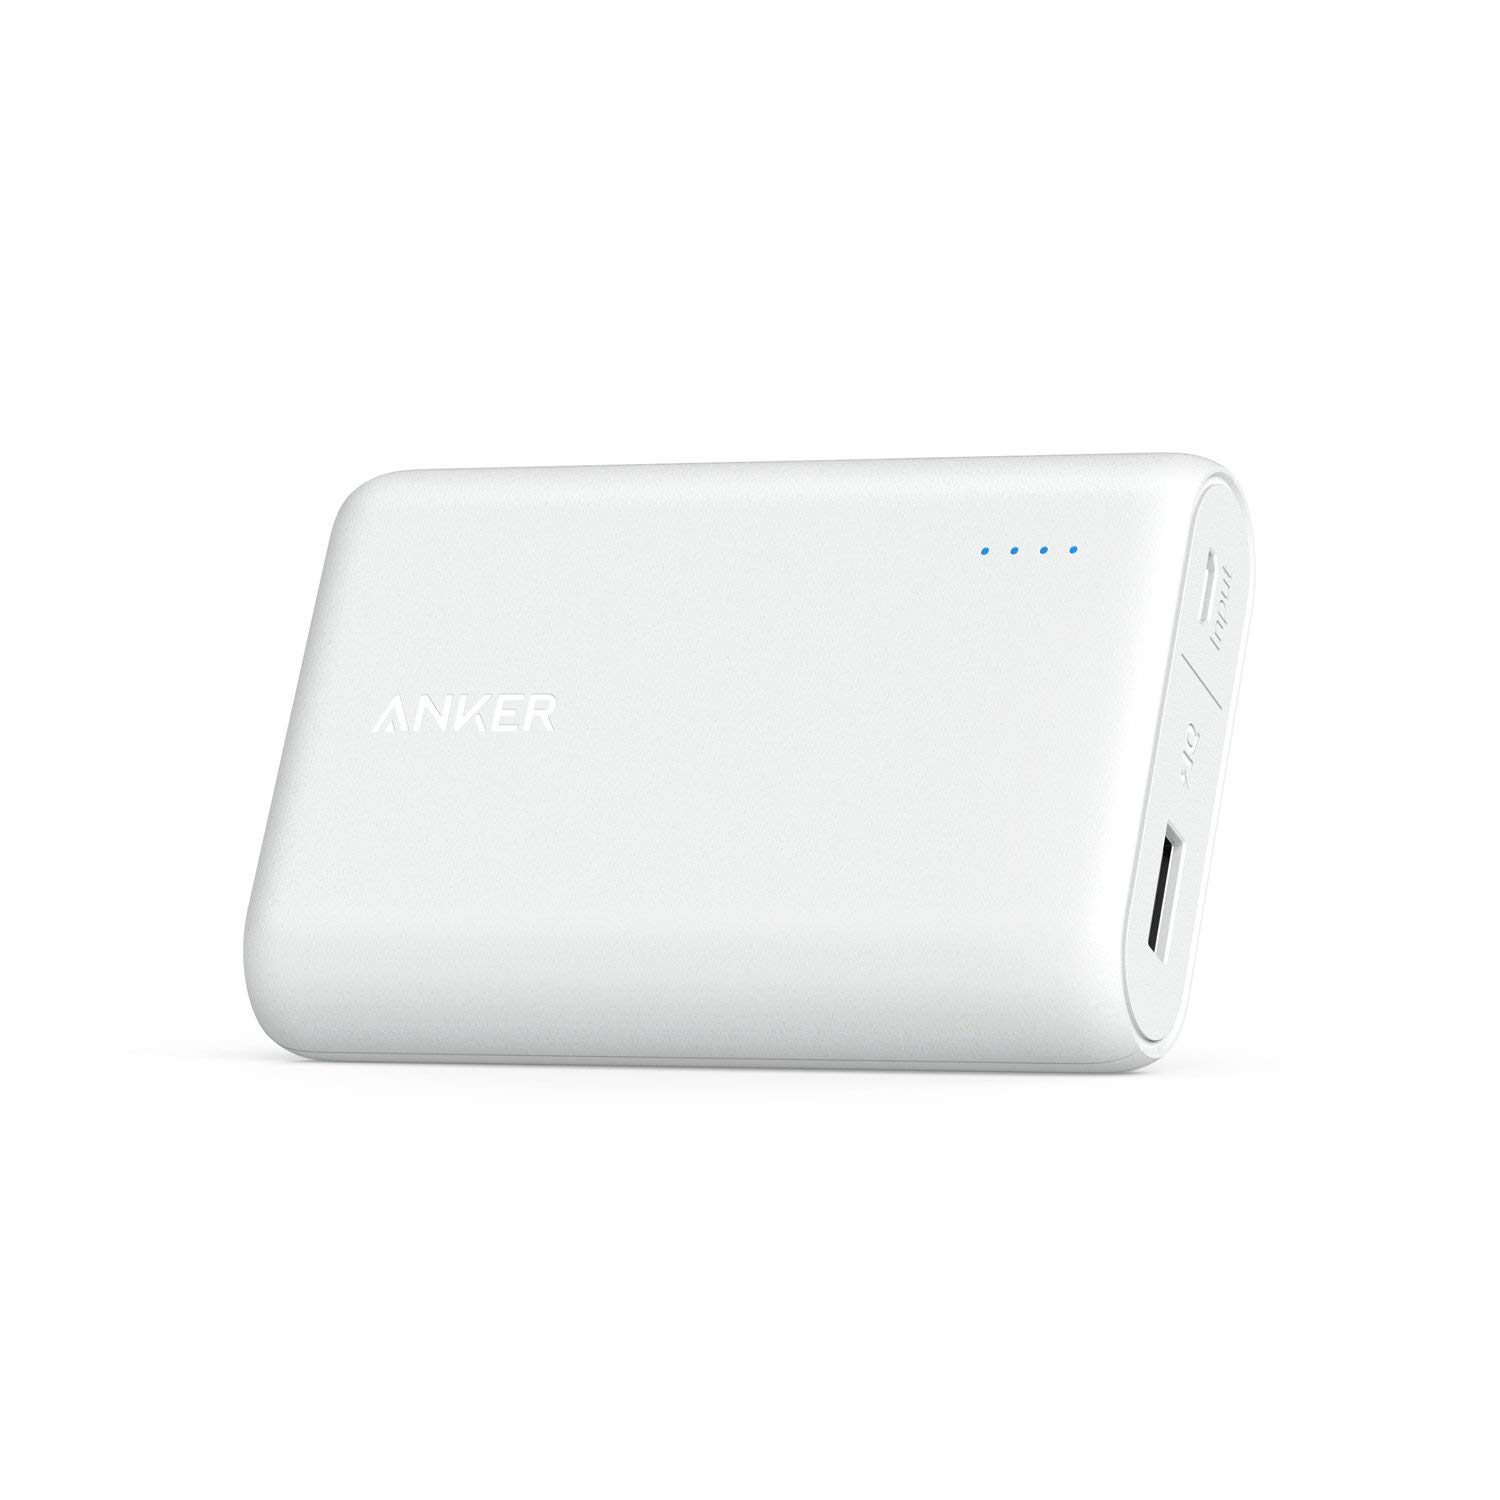 2. Power Bank - Anker PowerCore 1000, External Power Bank